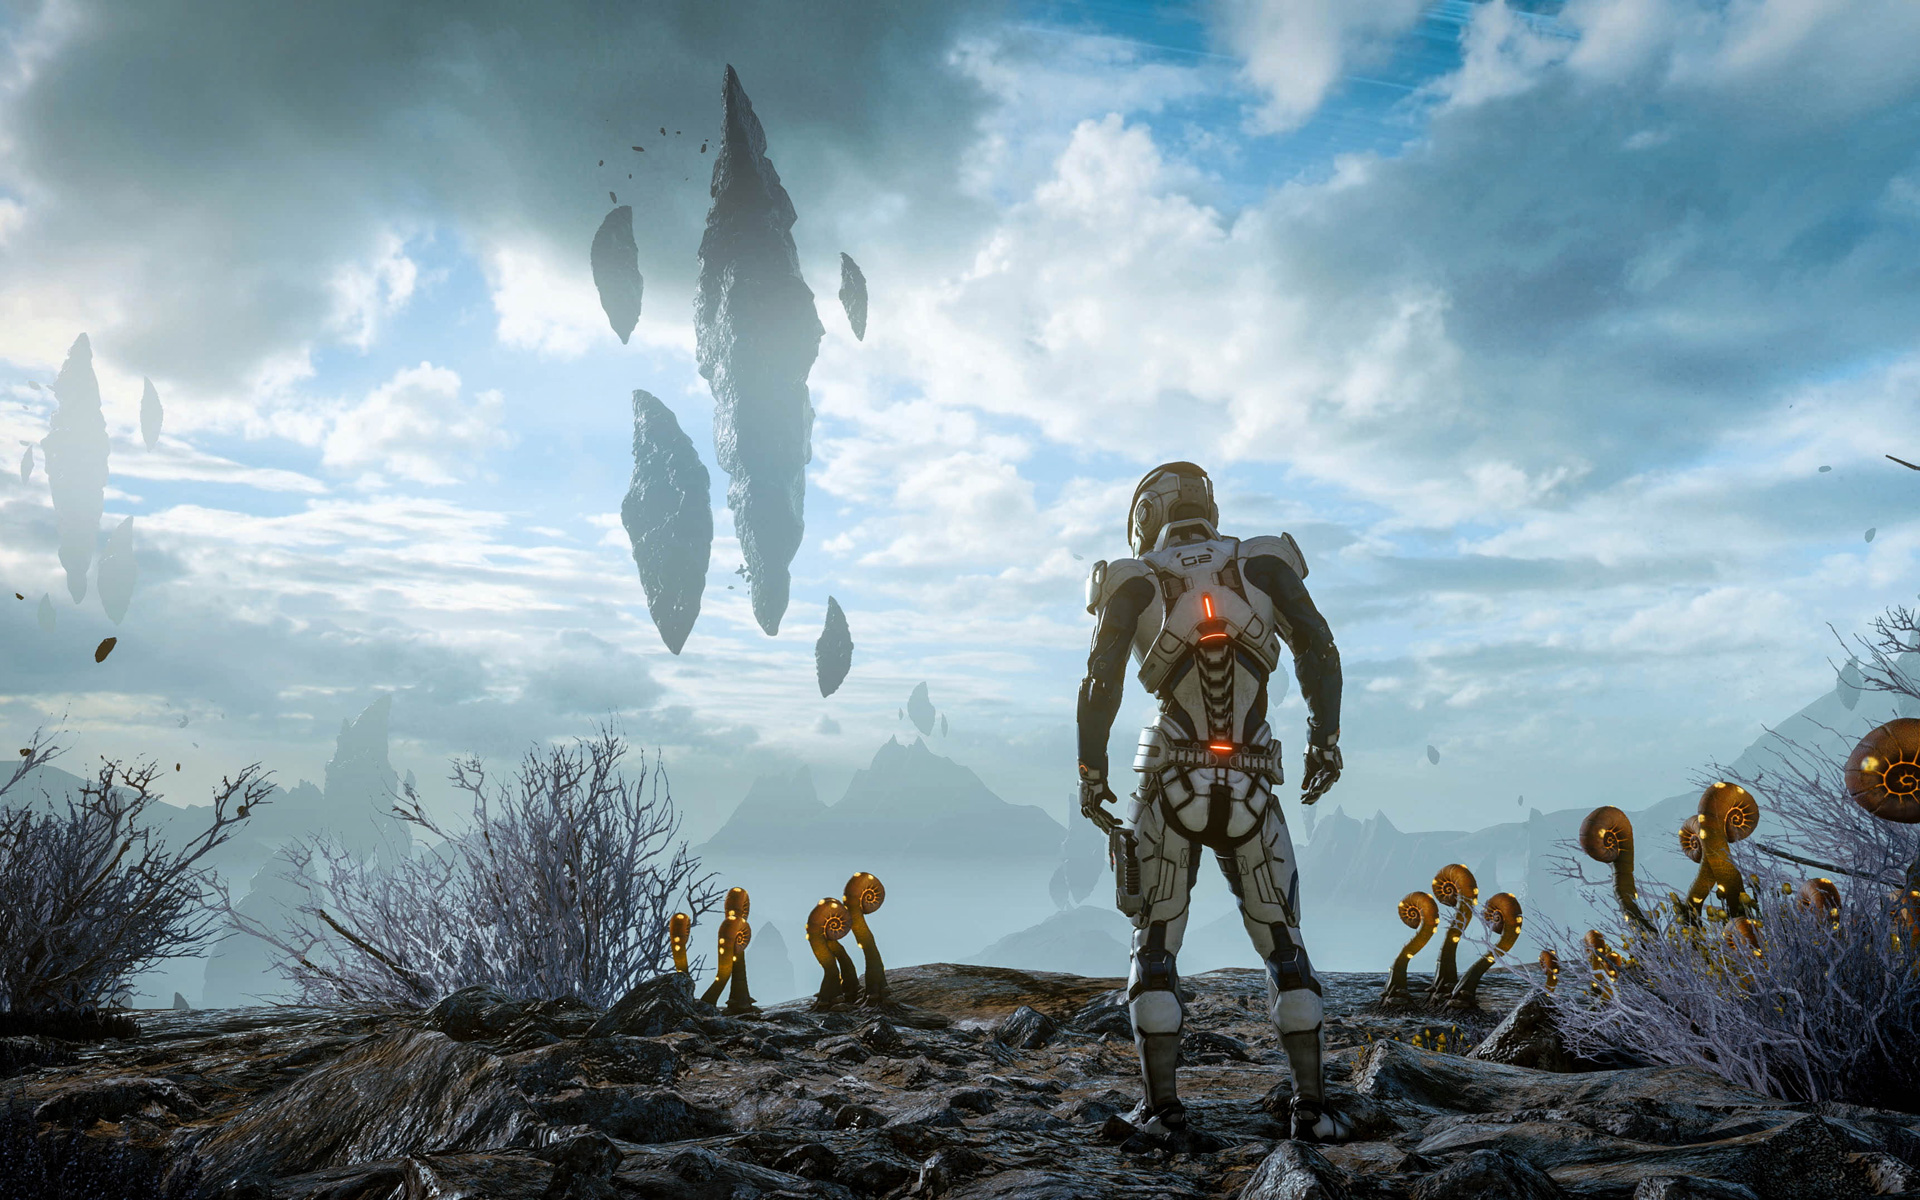 Free Mass Effect: Andromeda Wallpaper in 1920x1200